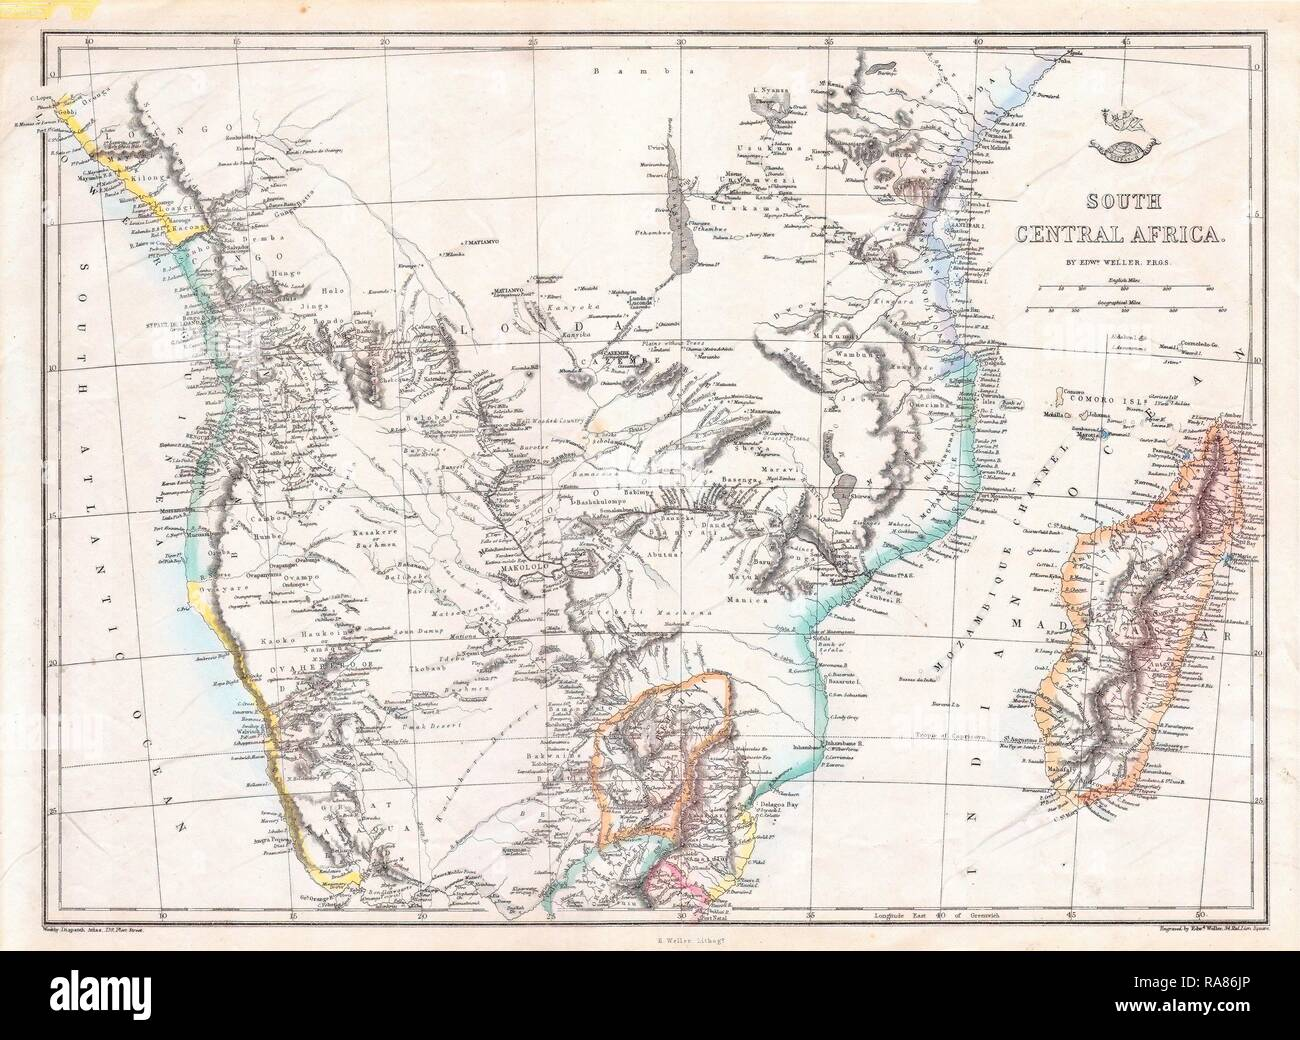 1868, Dispatch, Weller Map of South Central Africa, Angola, Botswana, Tanzania, etc. Reimagined by Gibon. Classic art reimagined - Stock Image